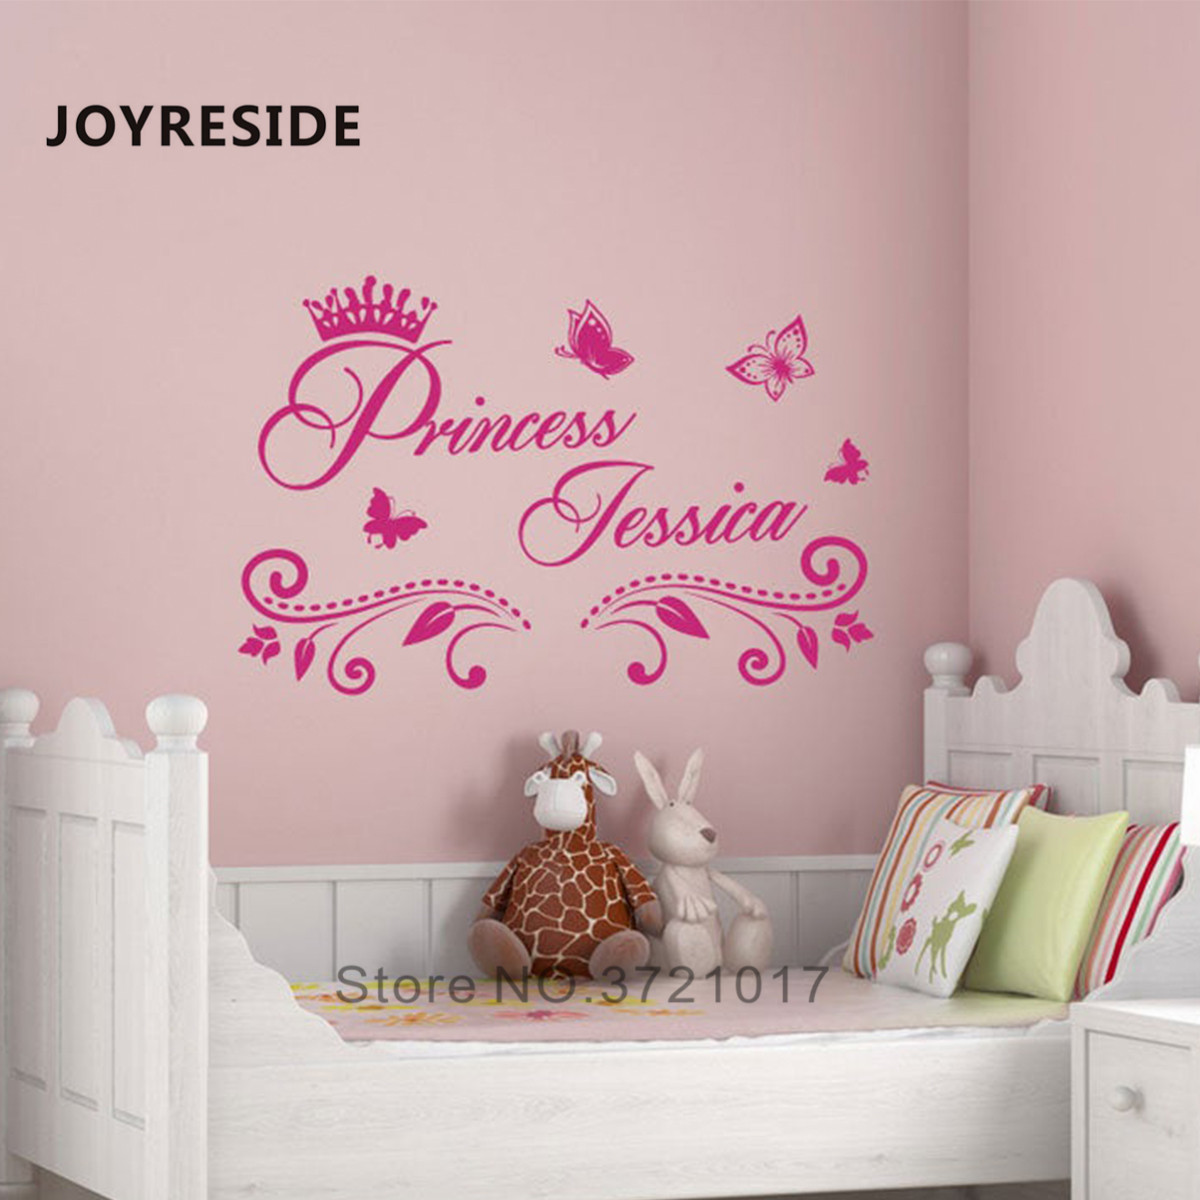 US $2.73 30% OFF|Princess Custom Girls Name Art Design Wall Sticker Home  Baby Girls Bedroom Wall Decor Wall Stickers Personalized Name Vinyl M397-in  ...